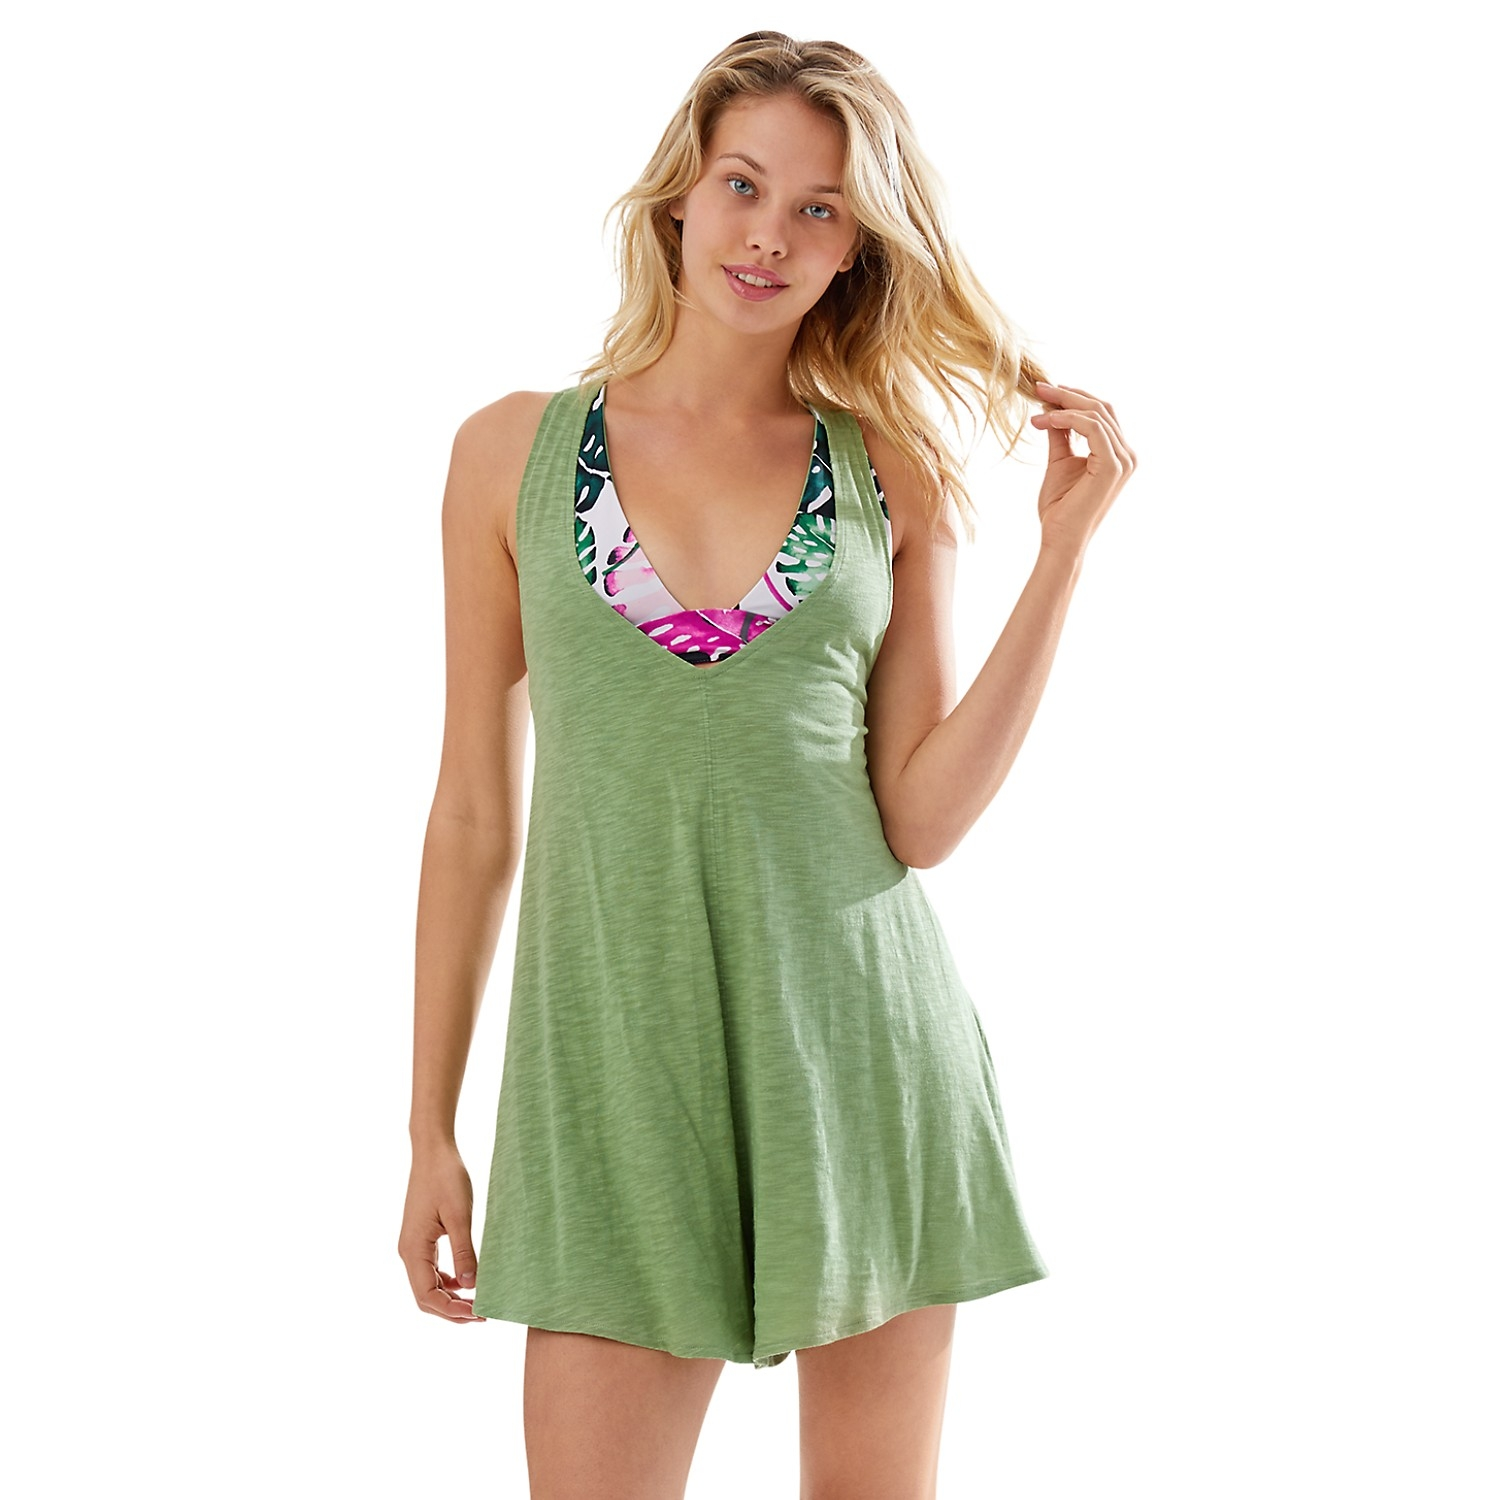 Shop this romper by clicking on the image or   HERE  .